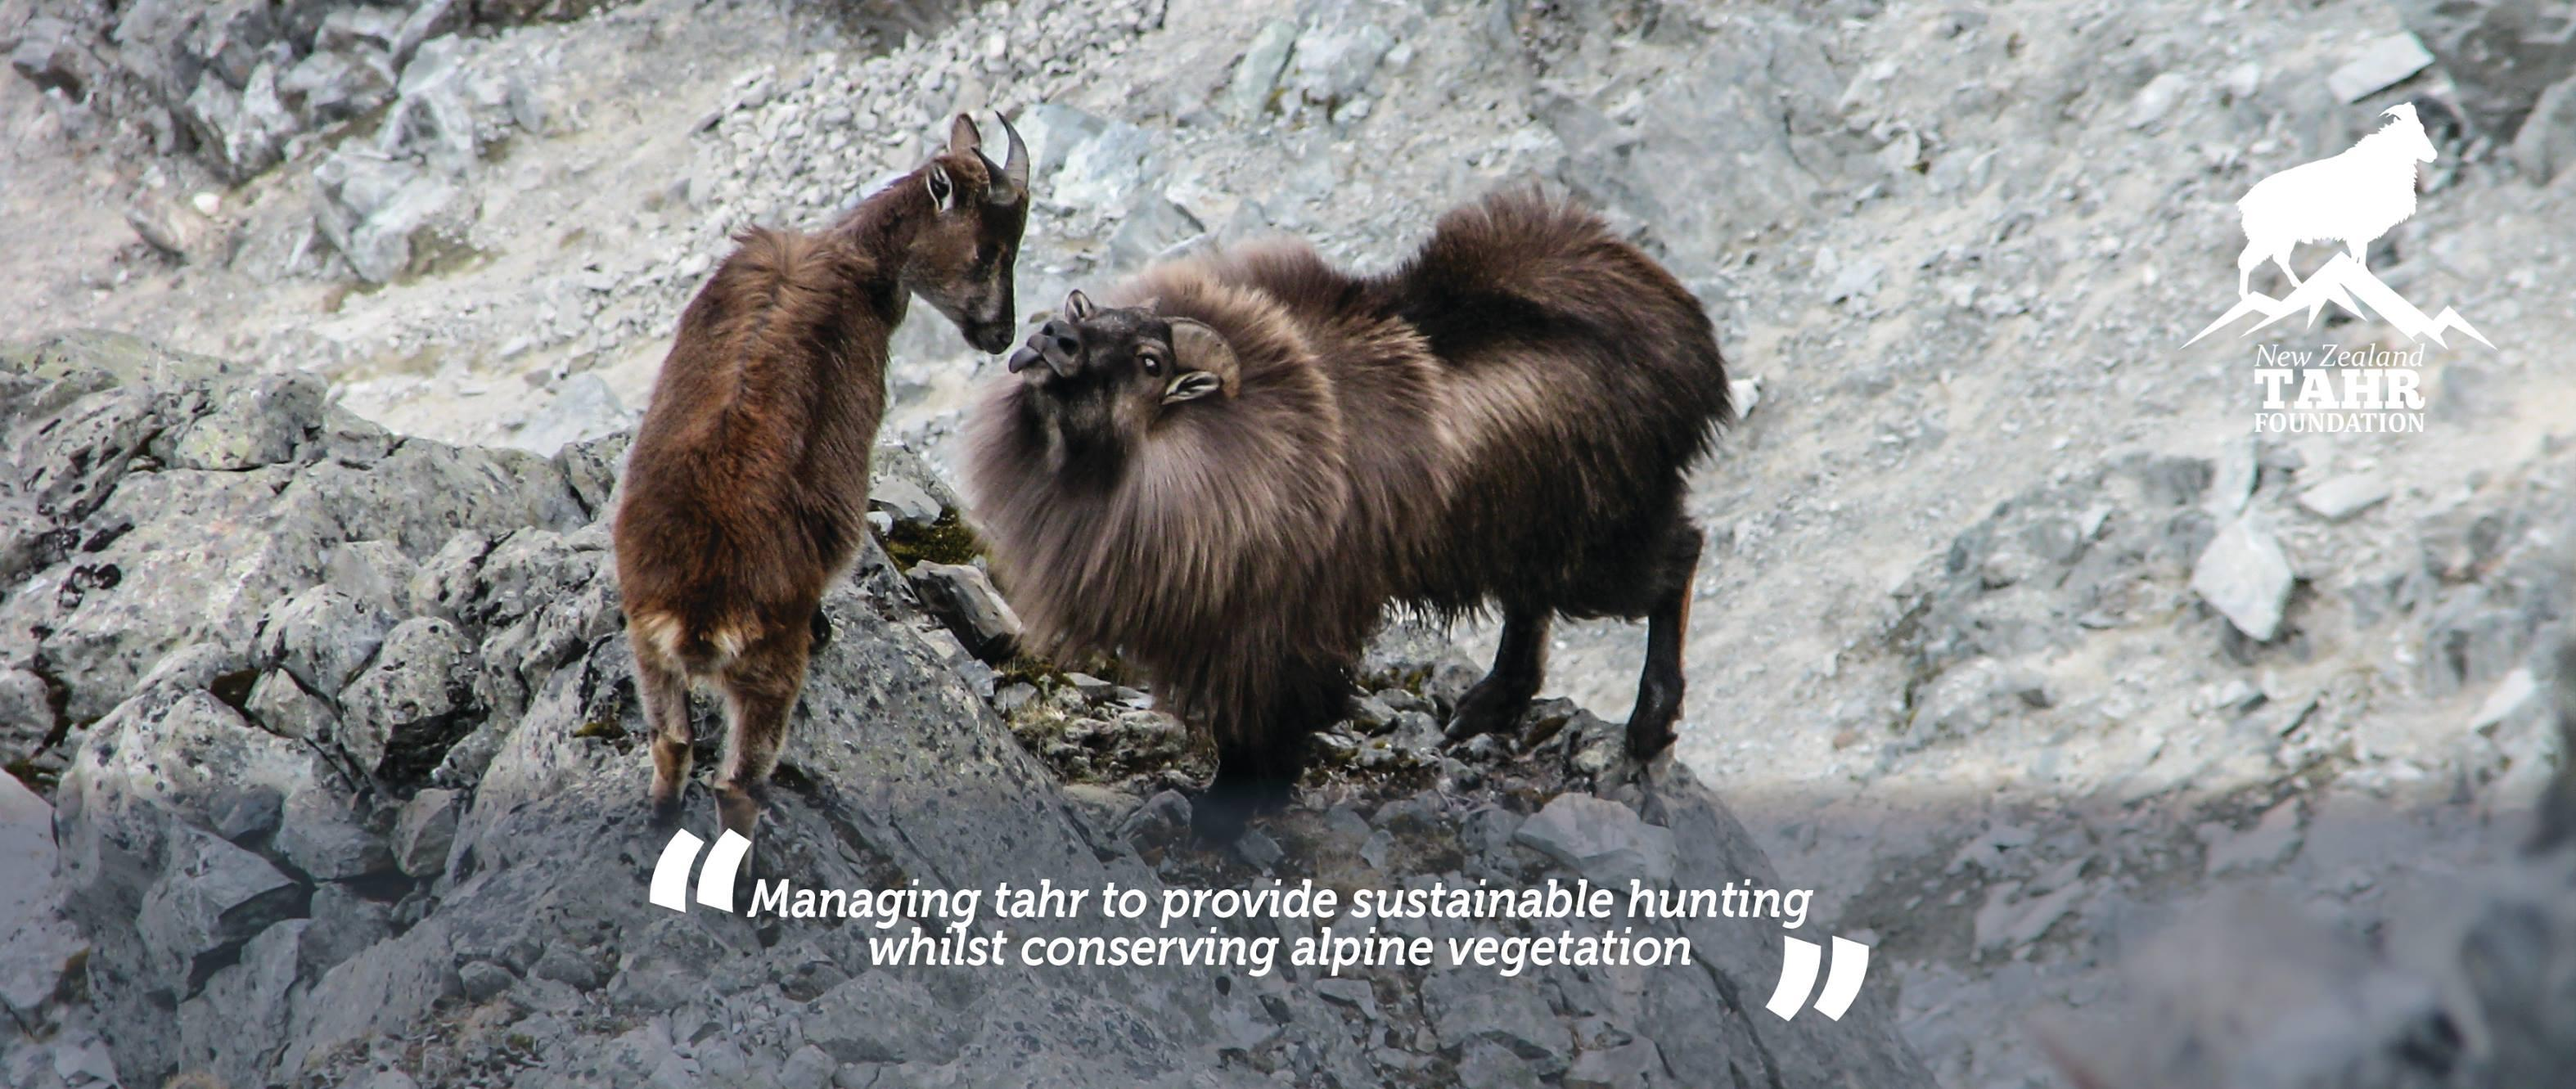 New Zealand Tahr Foundation